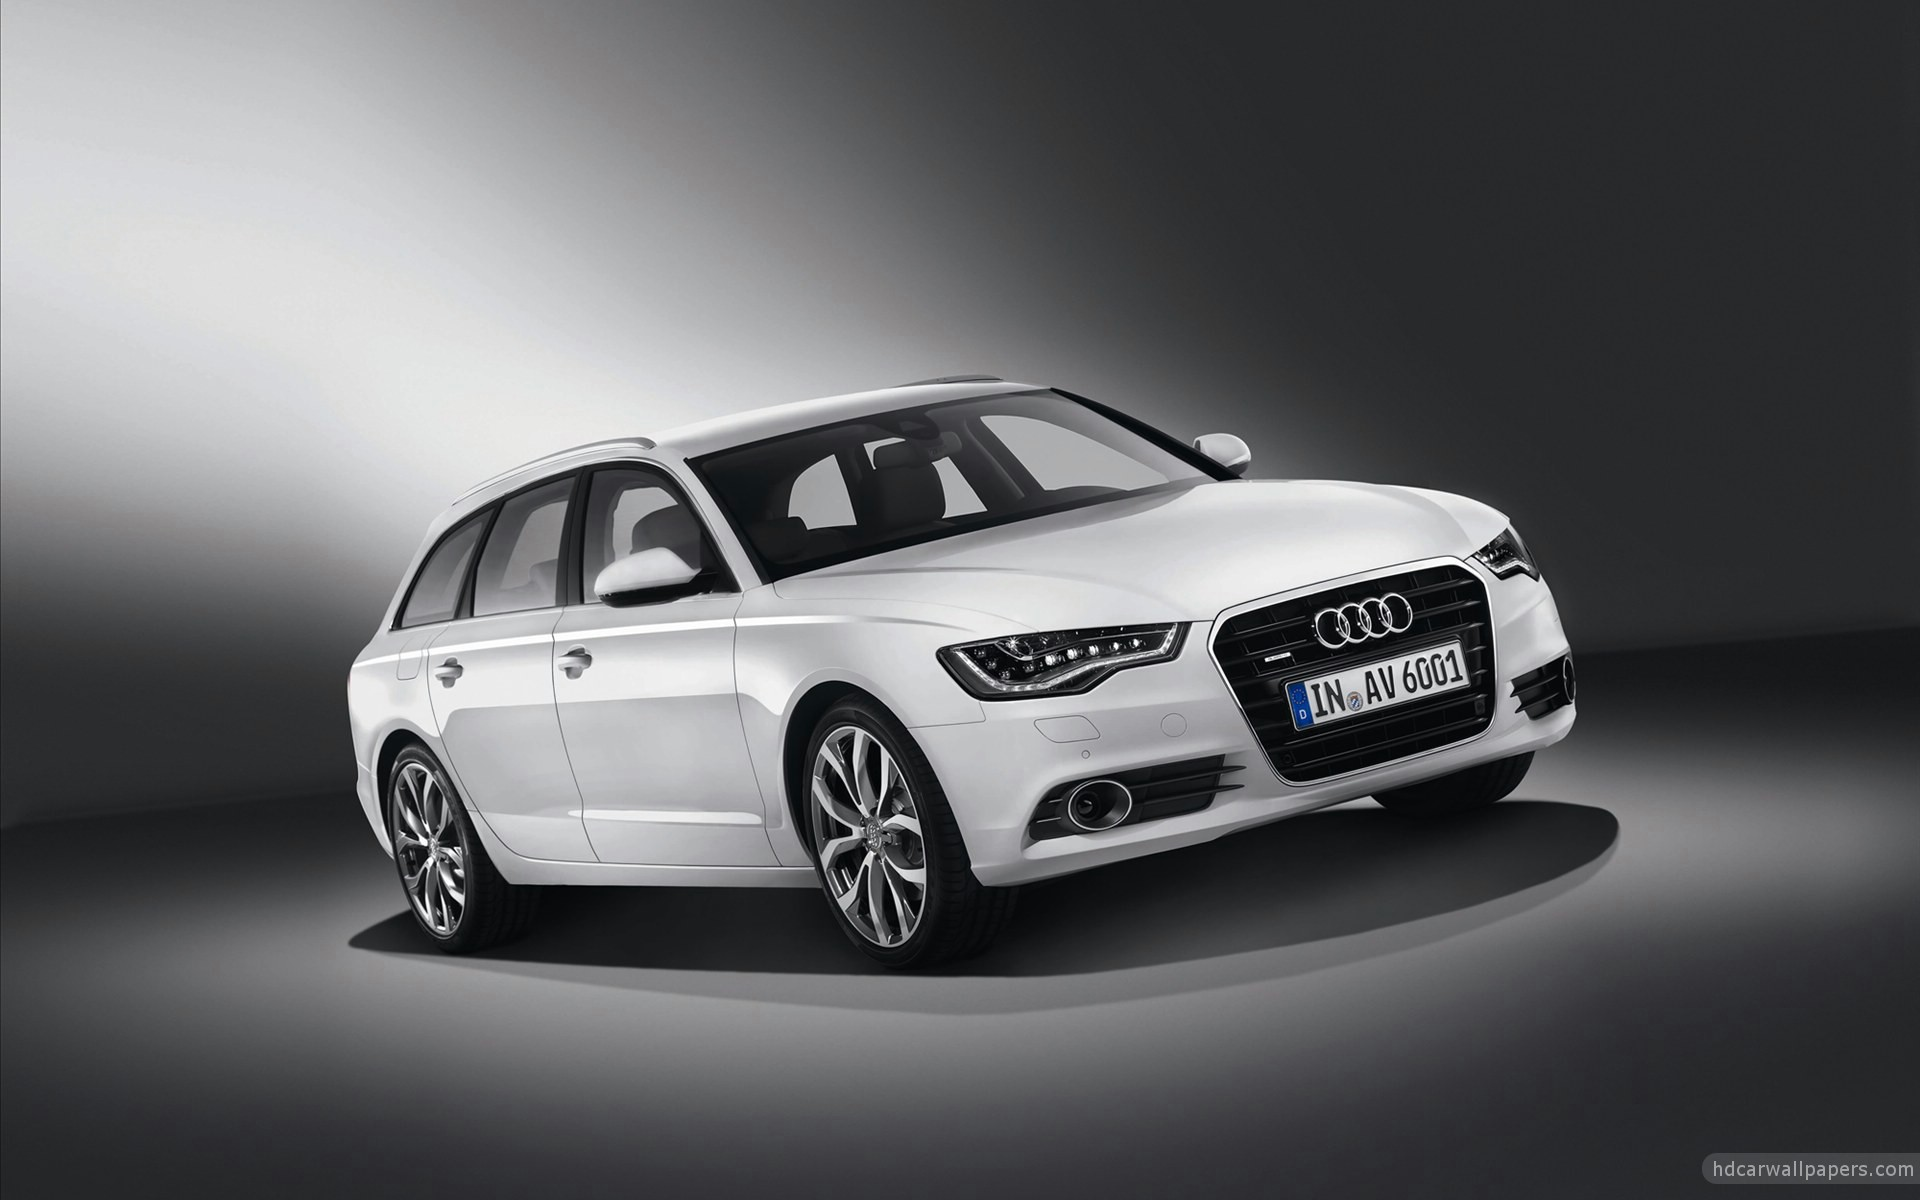 2012 audi a6 avant wallpaper hd car wallpapers id 2045. Black Bedroom Furniture Sets. Home Design Ideas